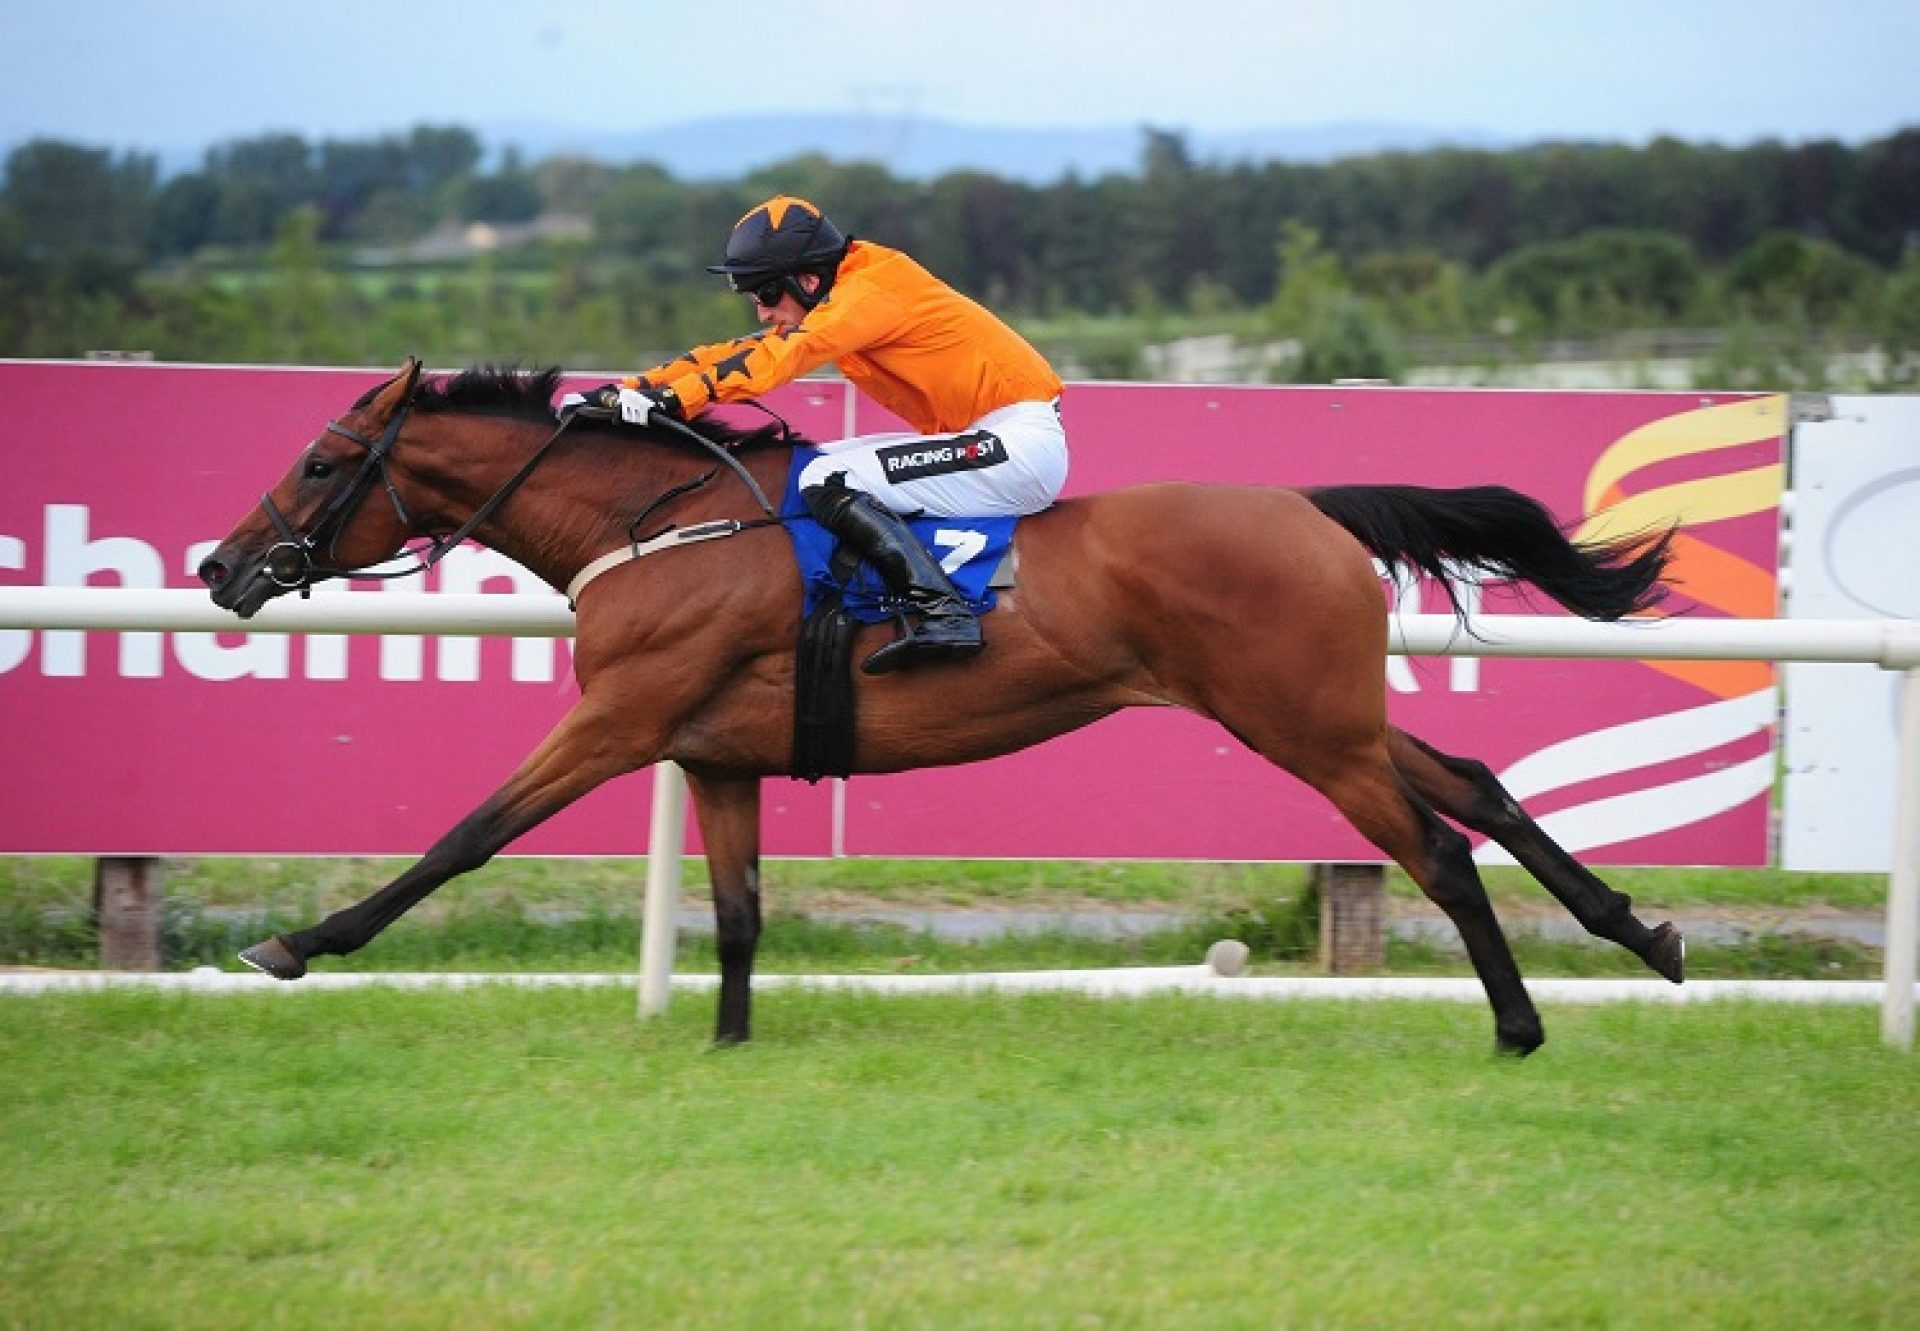 Escape Footwear (Mahler) winning a hurdle race at Tramore